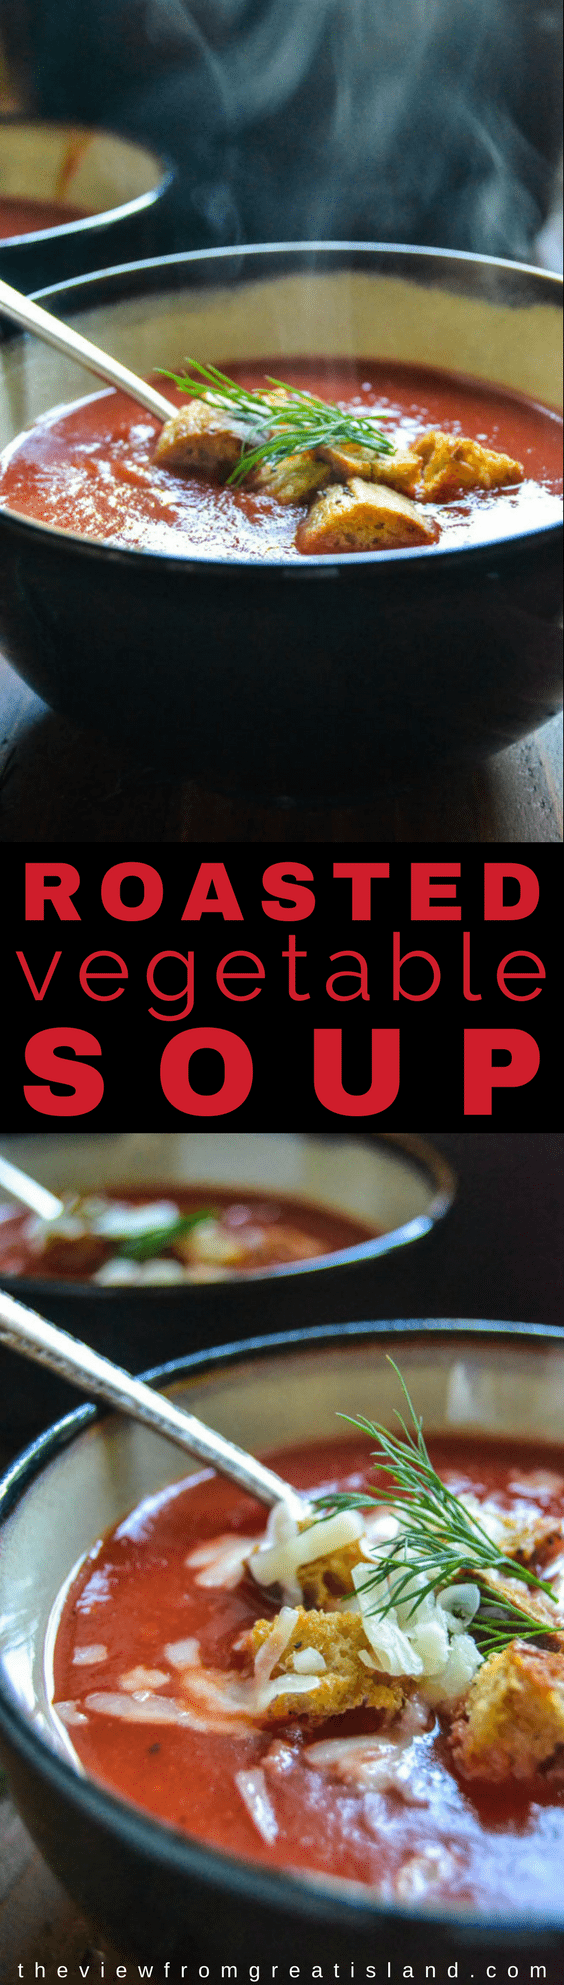 Roasted Winter Vegetable Soup My healthy Roasted Winter Vegetable Soup is the most gorgeous shade of crimson you've ever seen! This comforting vegetable soup is full of vitamins and antioxidants to get you through the winter in tip top shape.